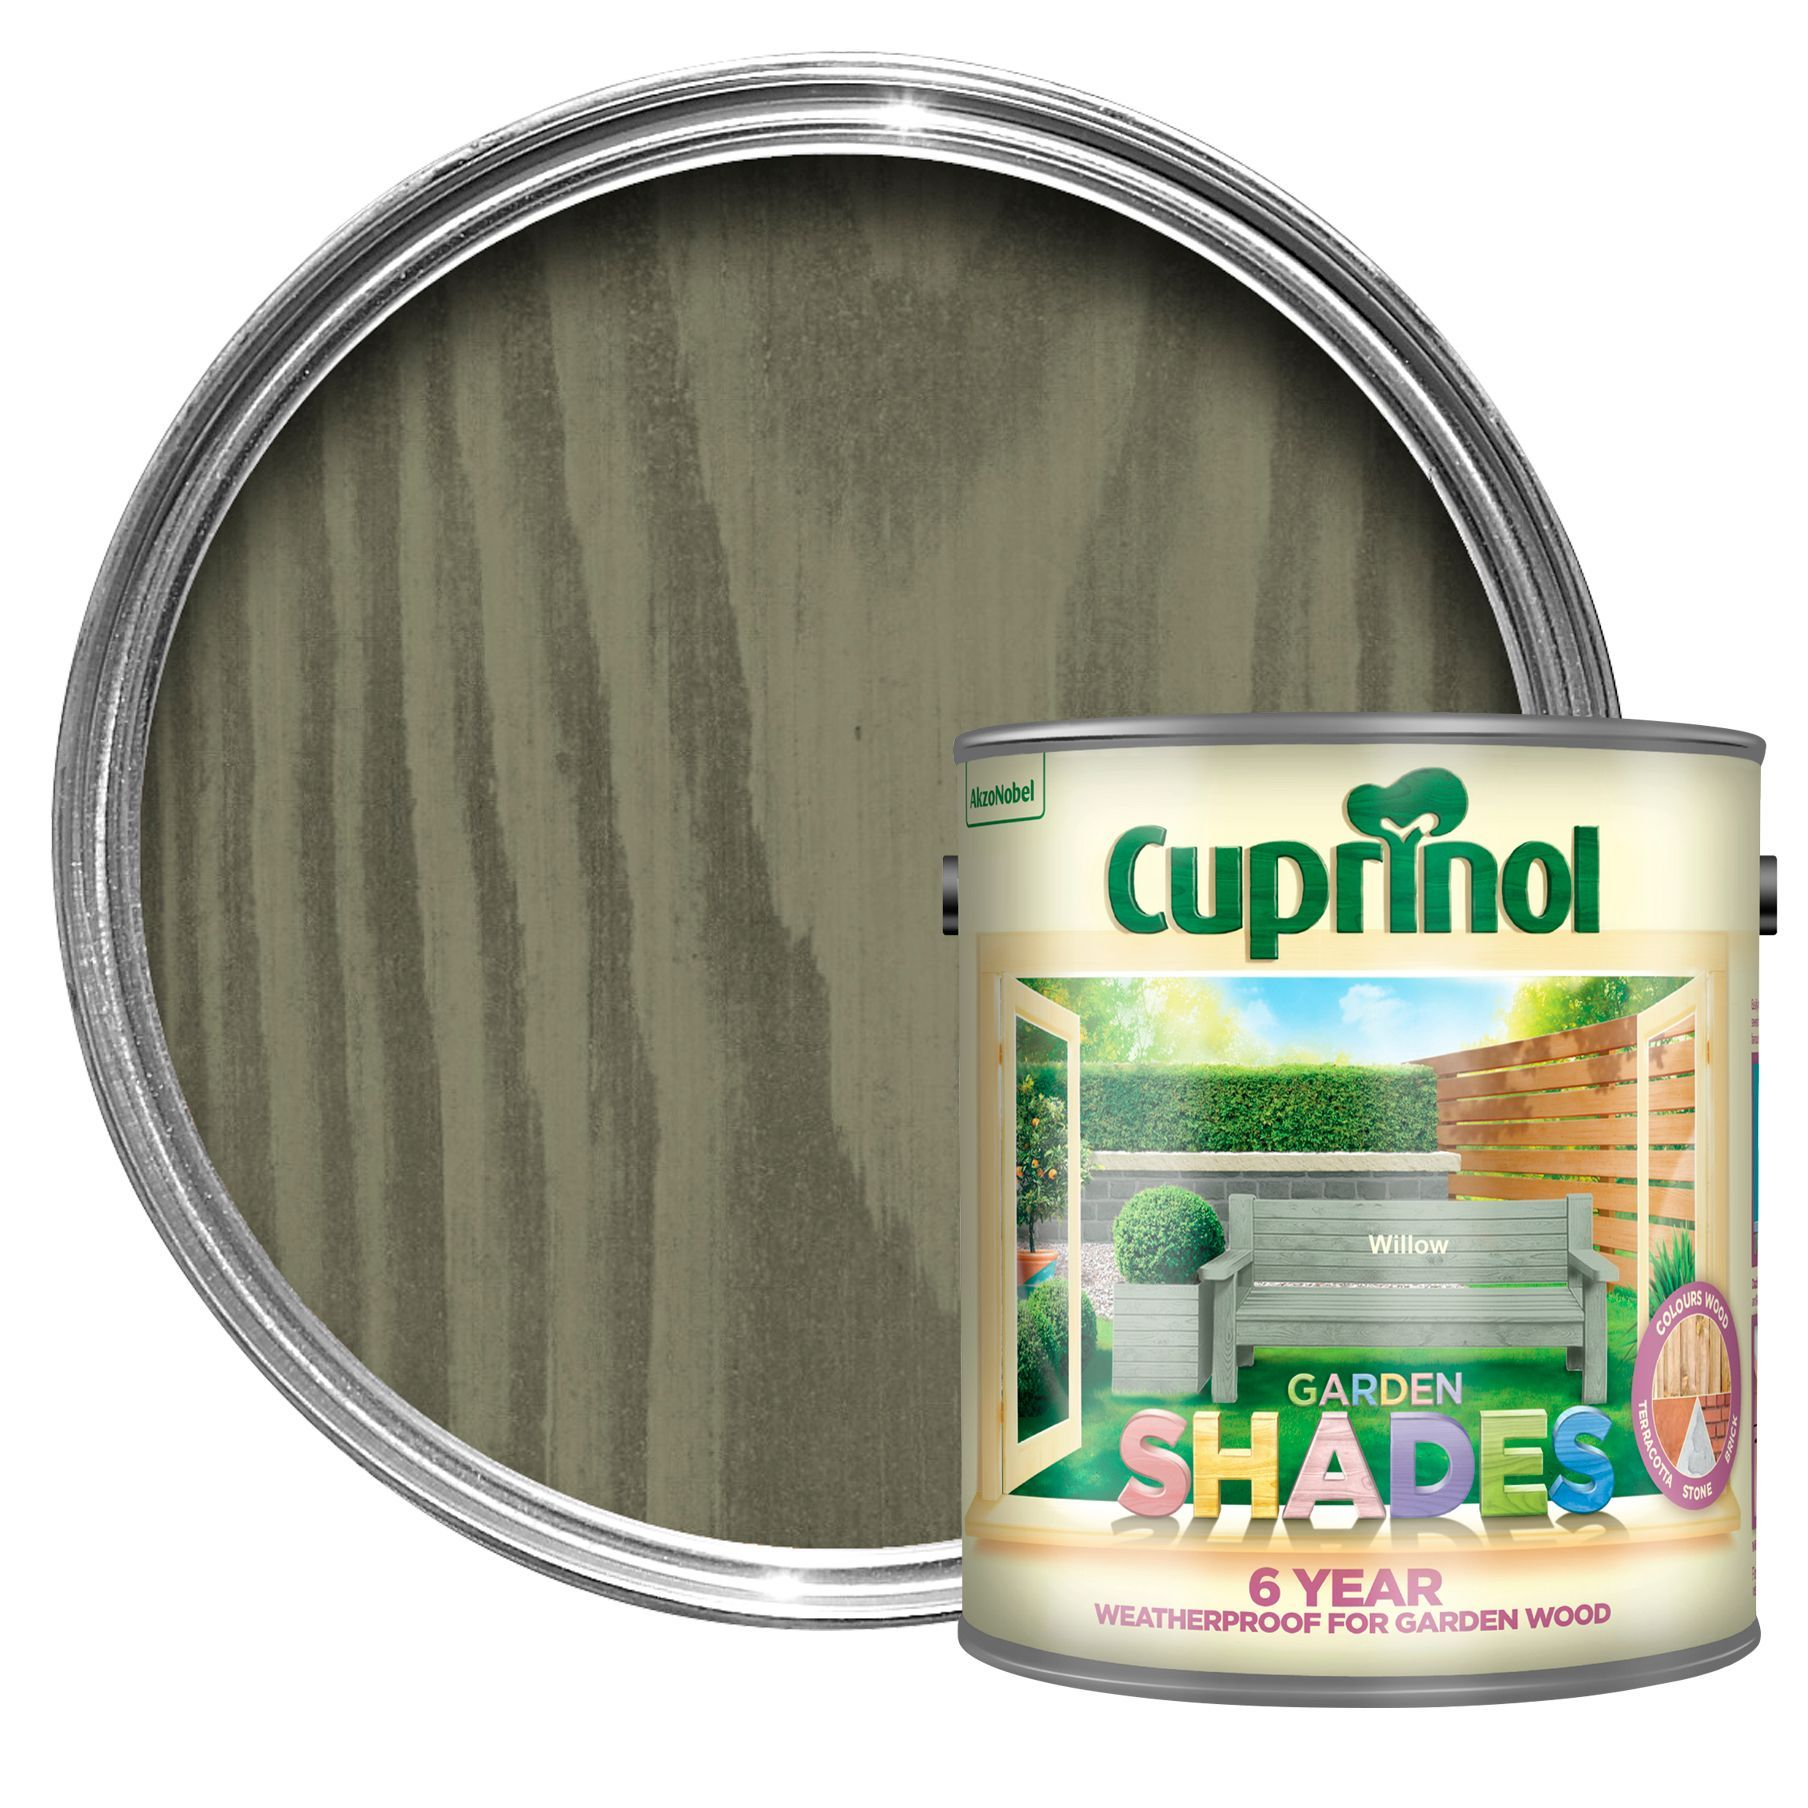 Cuprinol Garden Shades Willow Matt Wood Paint 2.5L